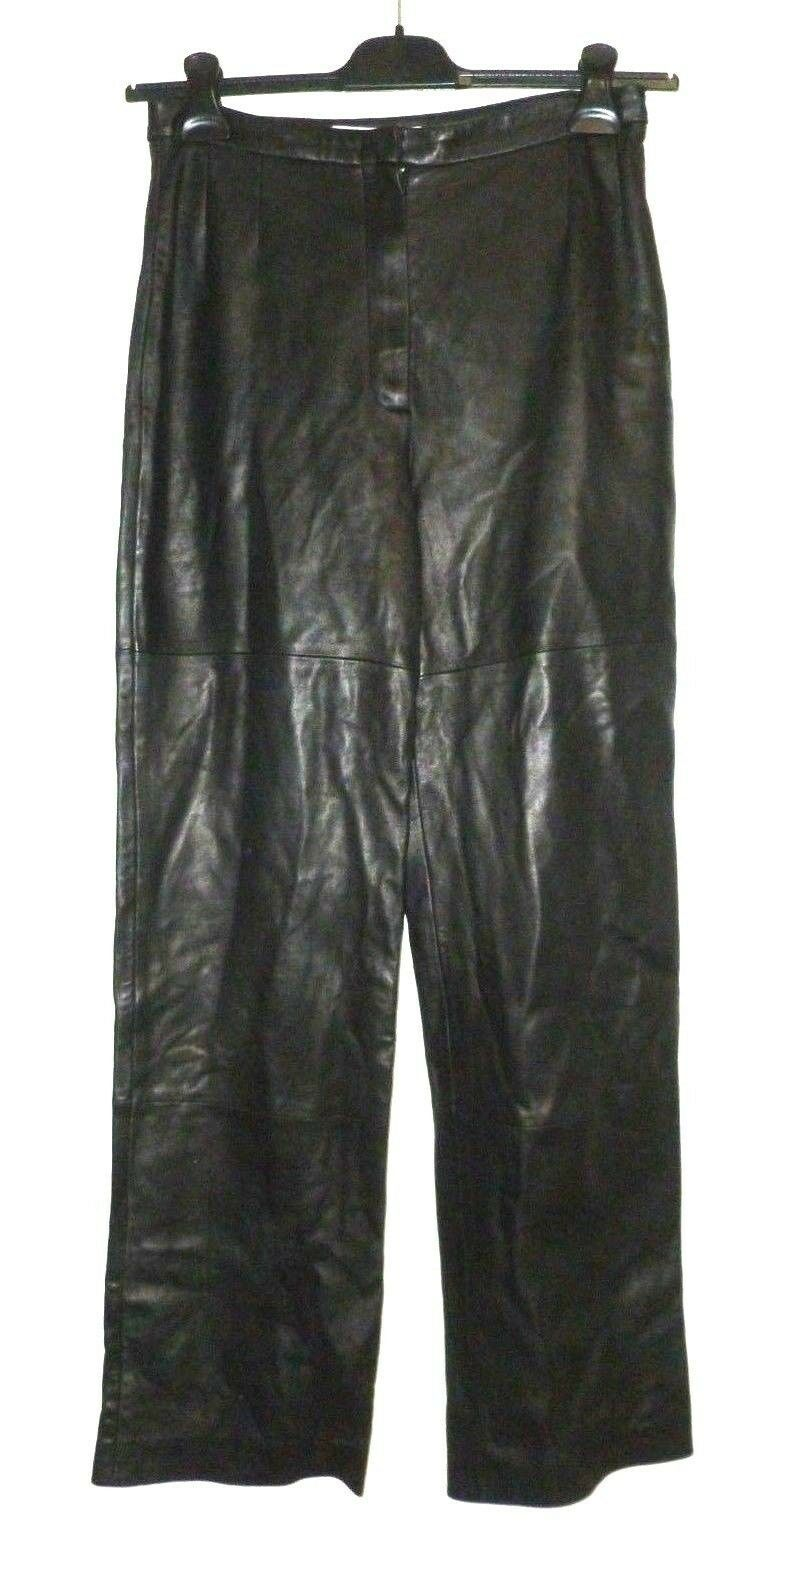 Max mara ladies leather trousers SIZE 28 inches USED VGC CR181 AA 10